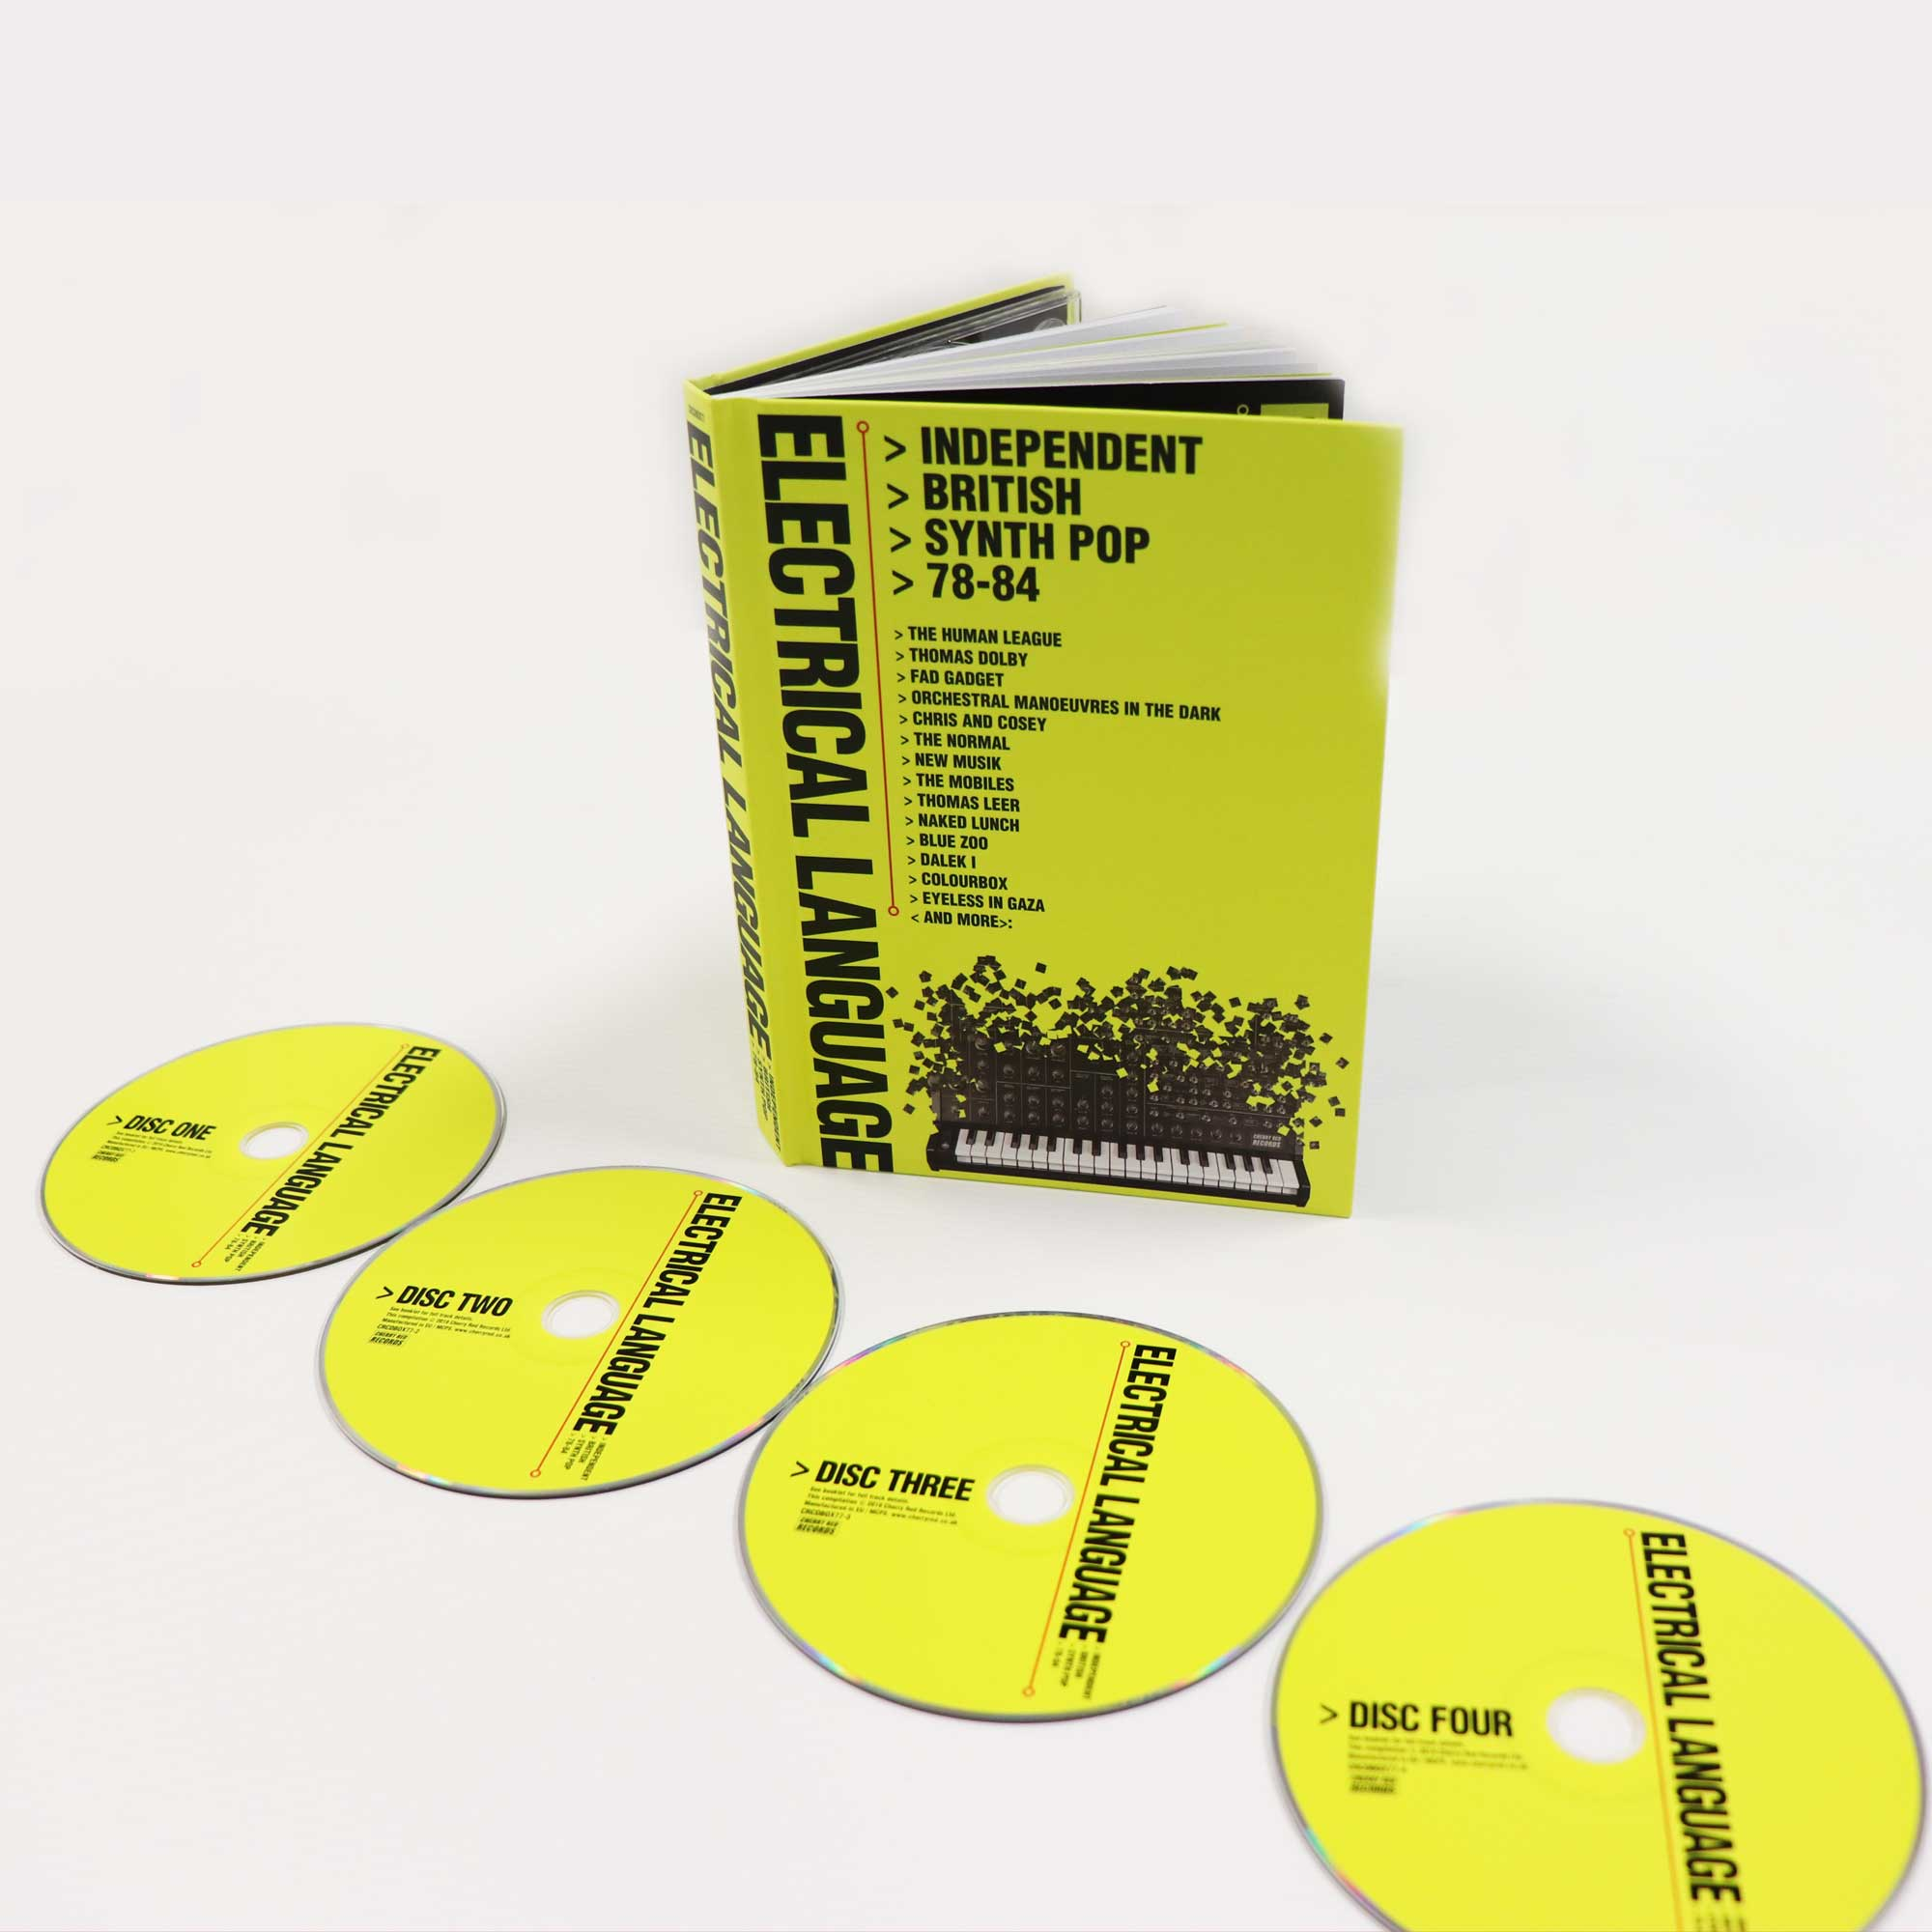 Electrical Language: Independent British Synth Pop 78-84, Various Artists,  4CD/48pp Bookpack